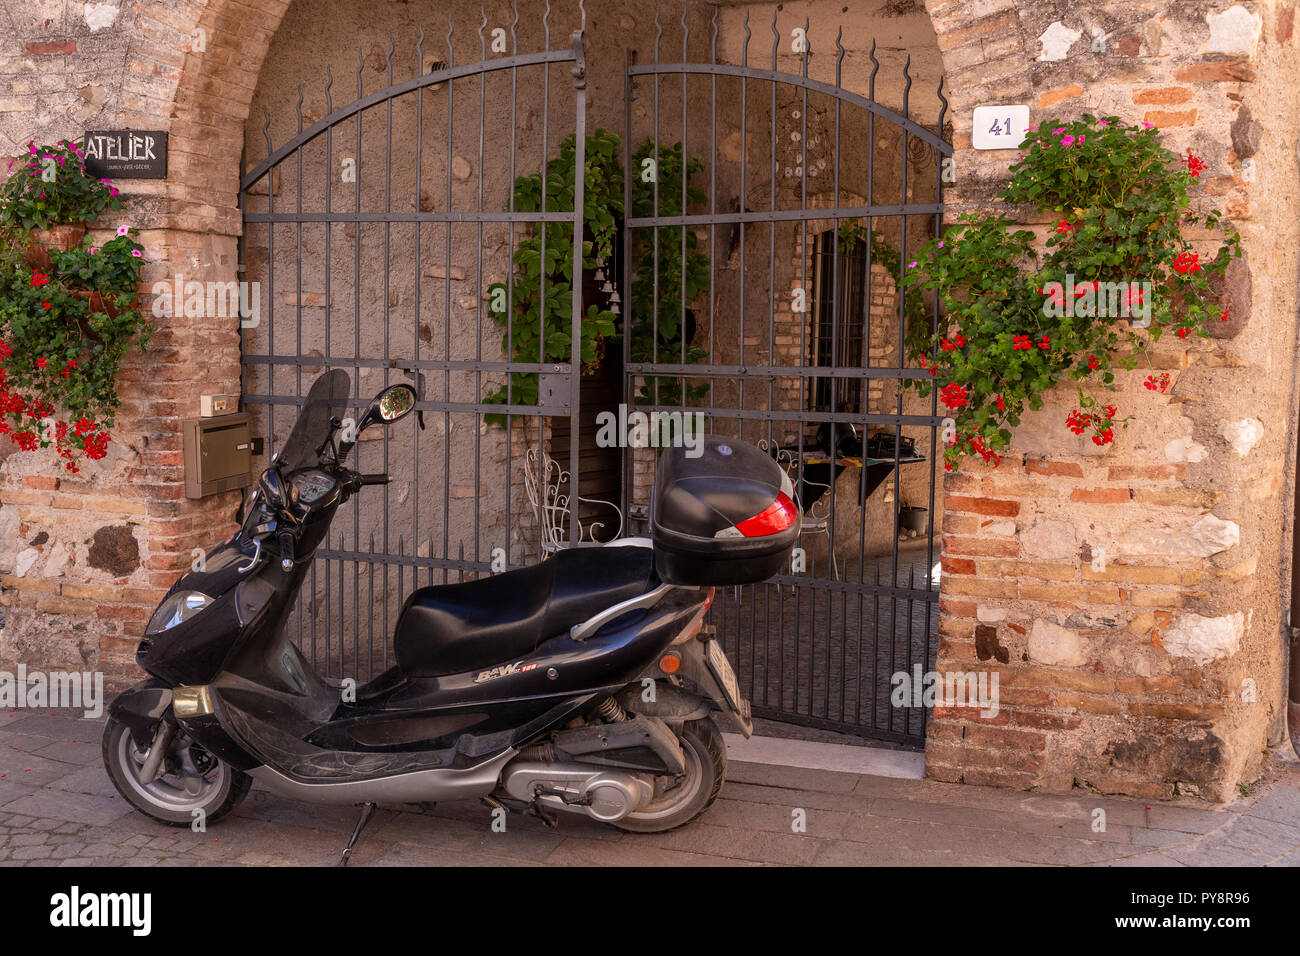 Scooter by a gate at Castellaro Laguselo in northern ItalyStock Photo